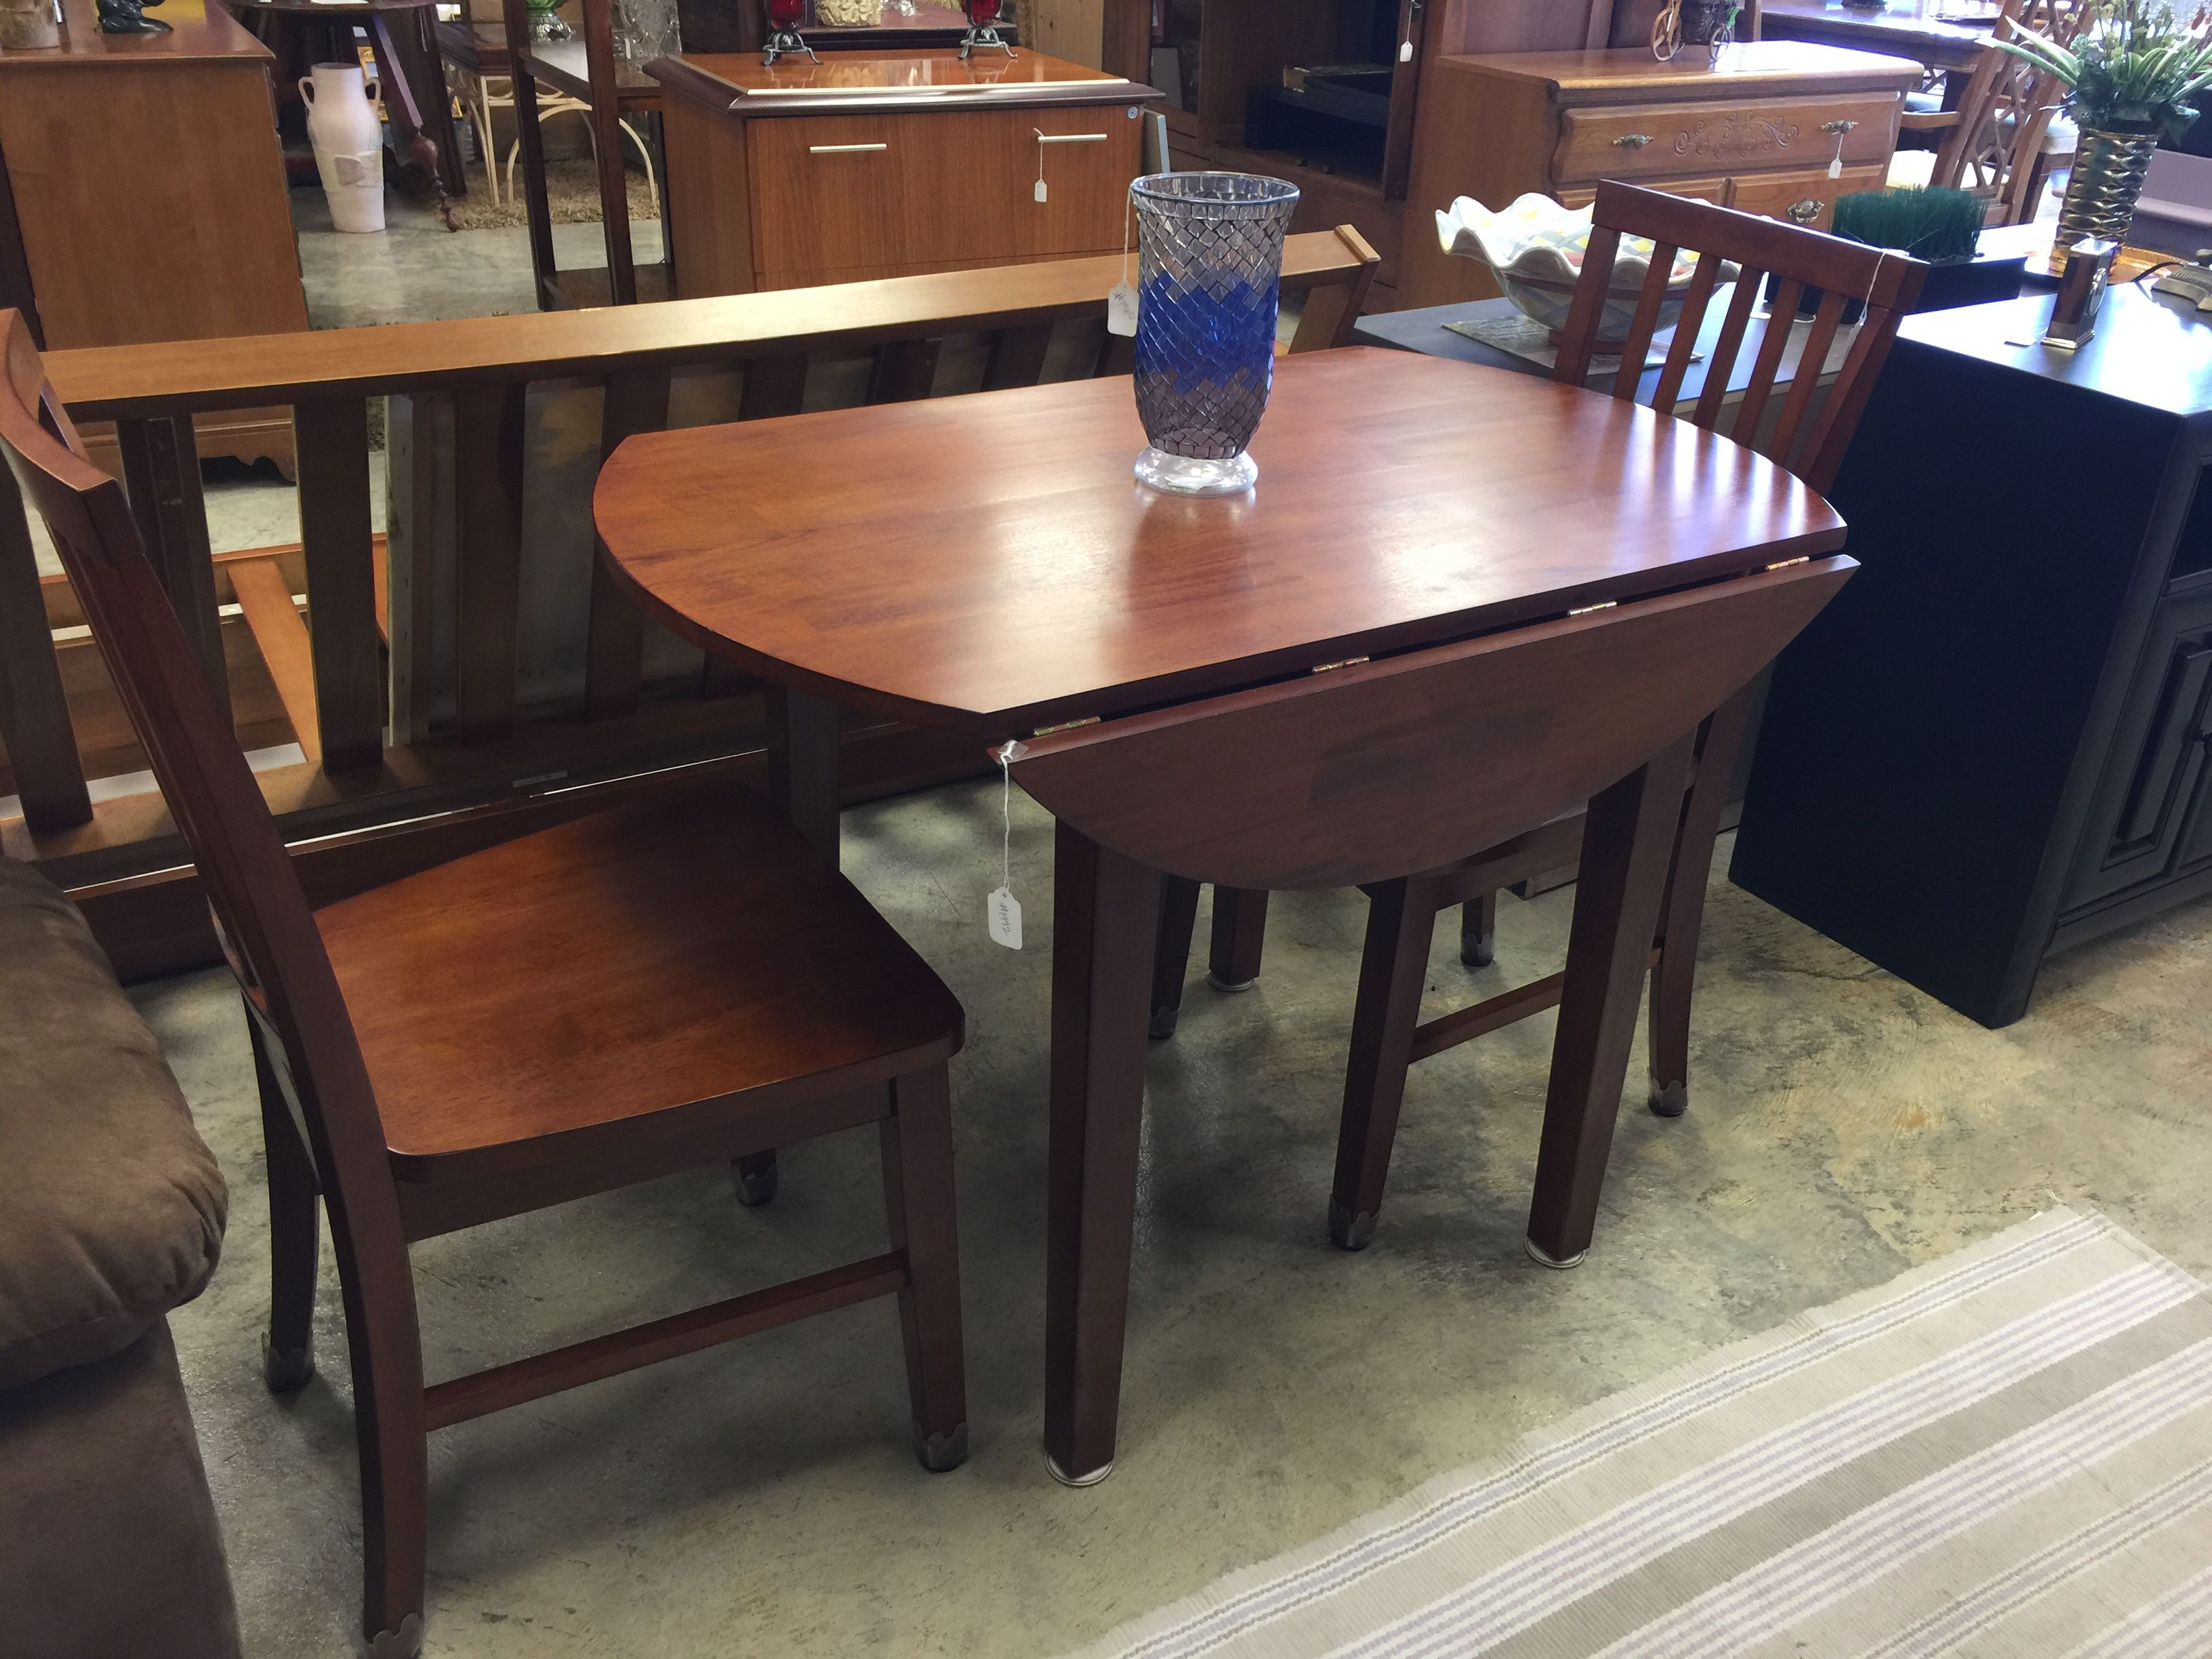 Drop Leaf Table And Two Chairs 175 Buy Online At Mkconsignment